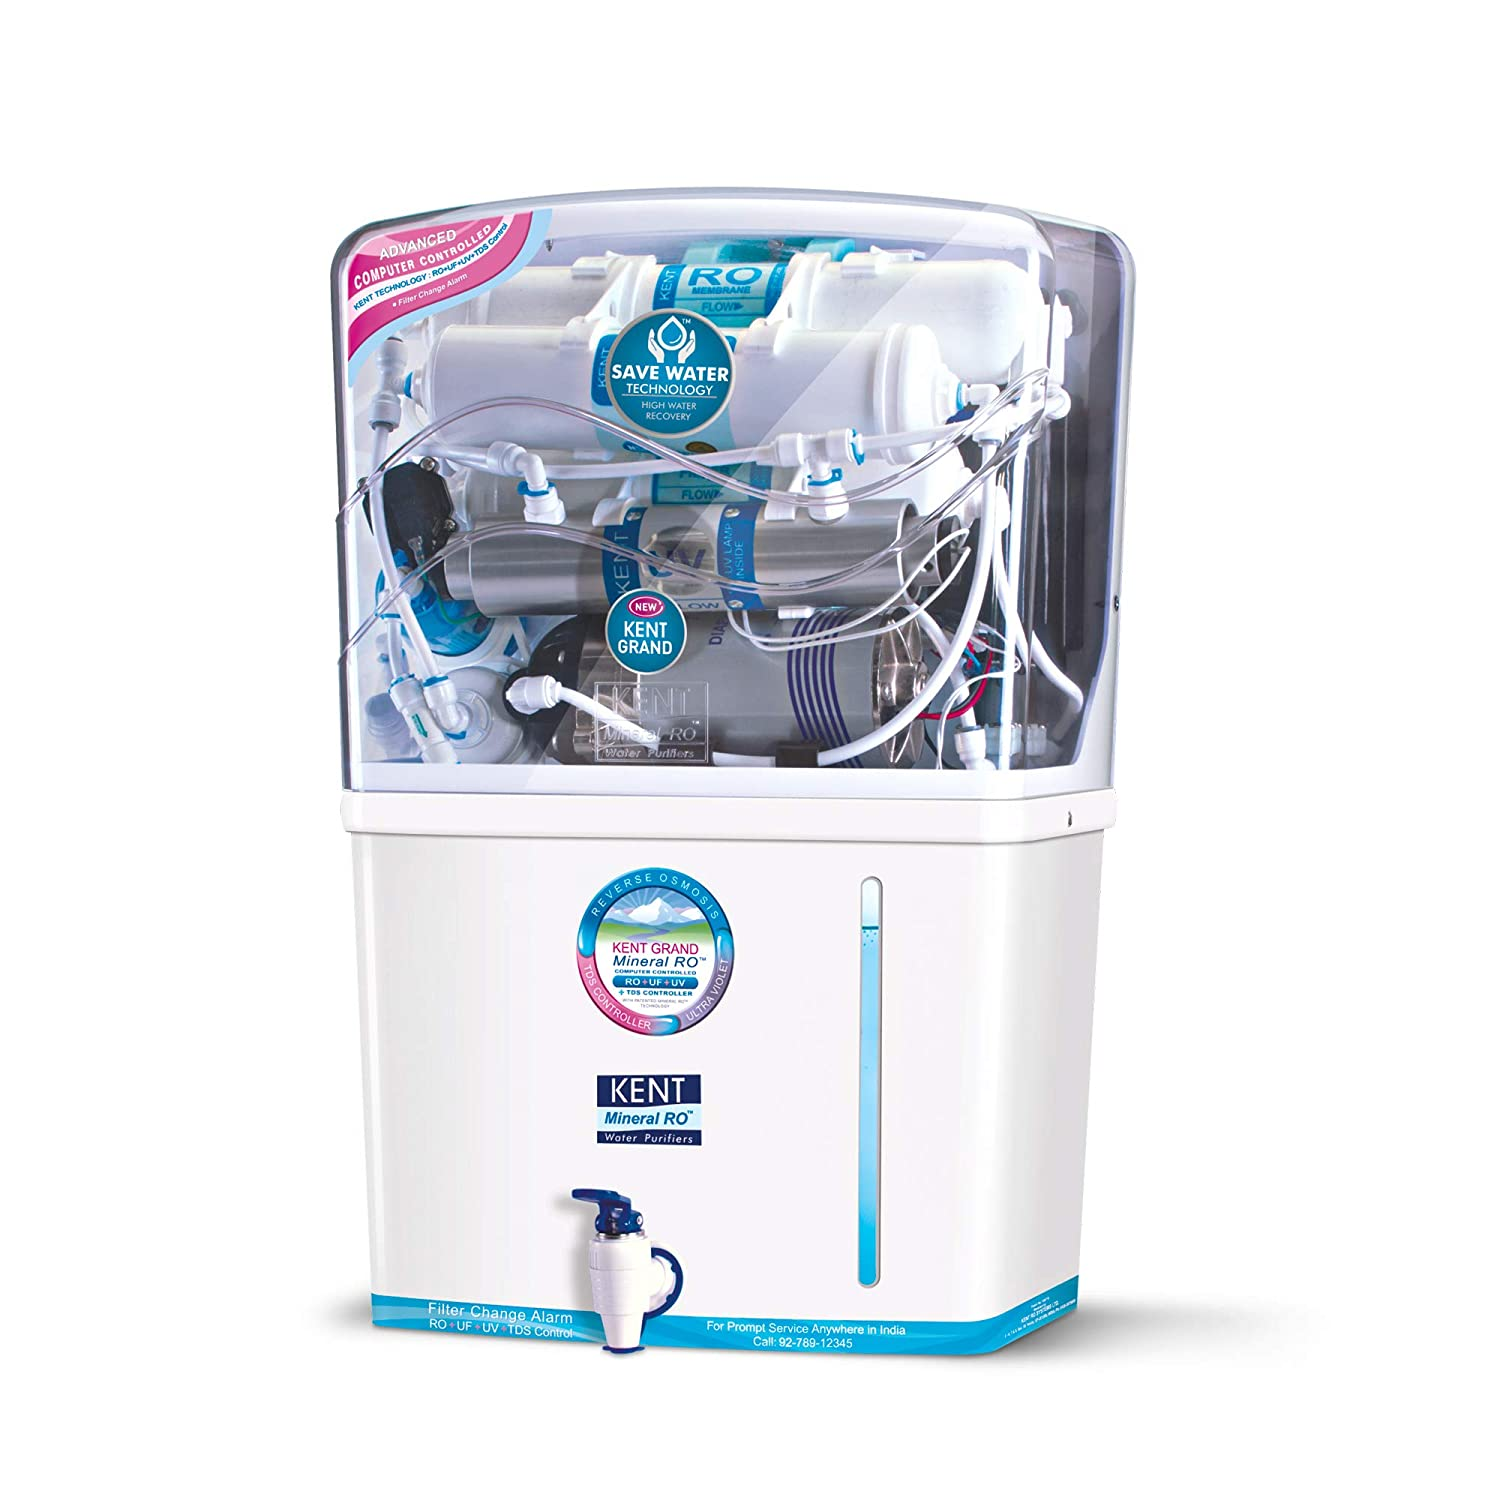 1. Kent Grand 8 litre Mineral RO+UV/UF Water Purifier